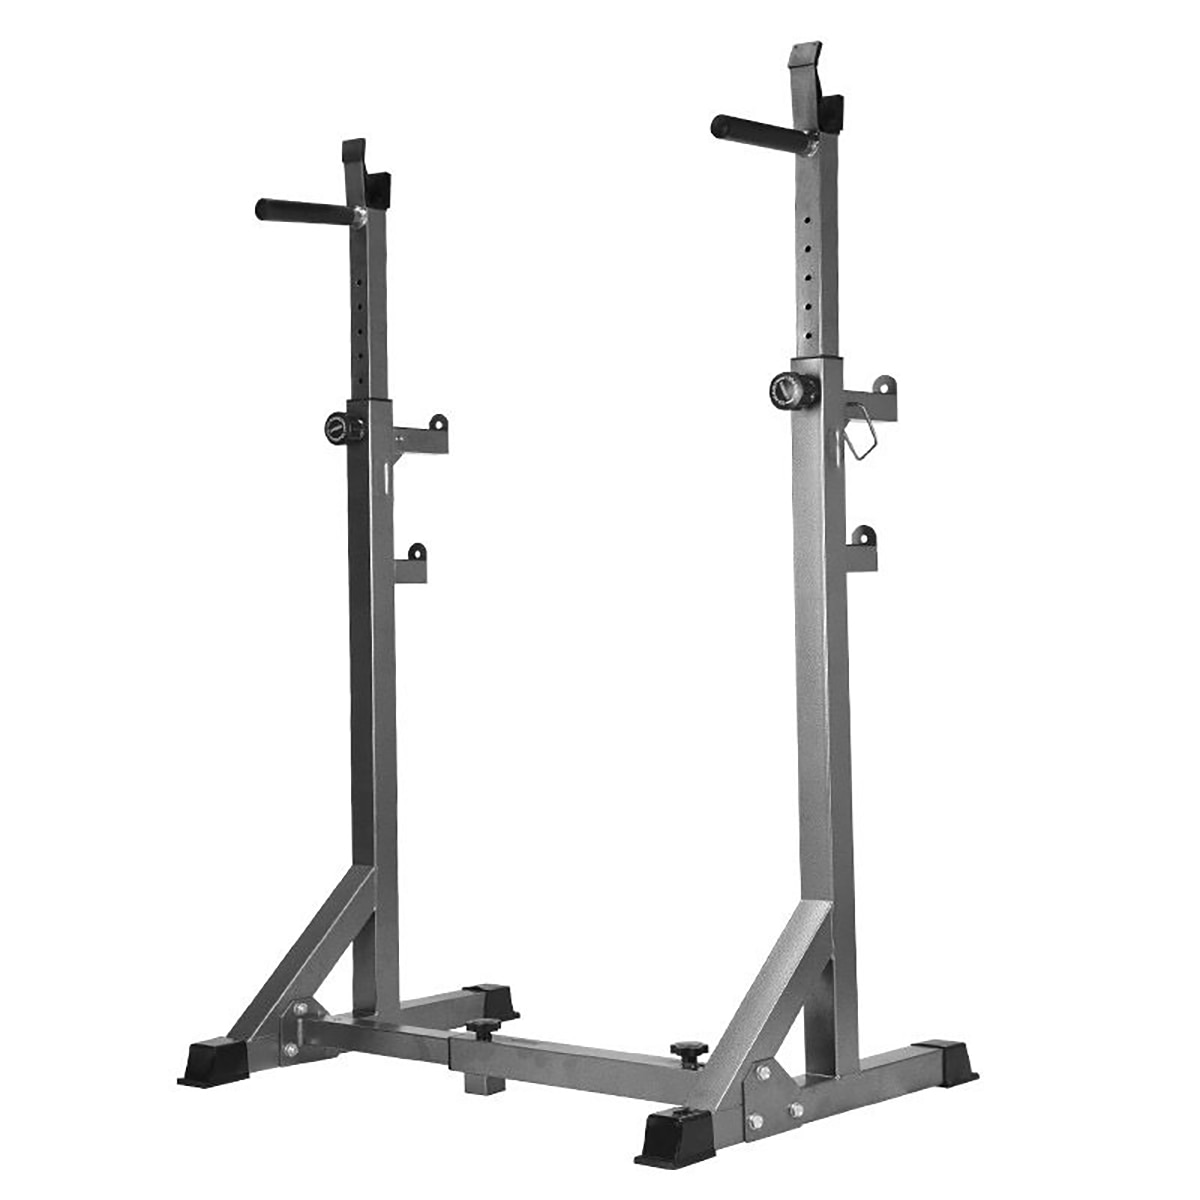 Adjustable Squat Rack 300KG Fitness Muscle Training Barbell Stand Workout Trainer Home Gym Fitness Equipment Weight Lifting